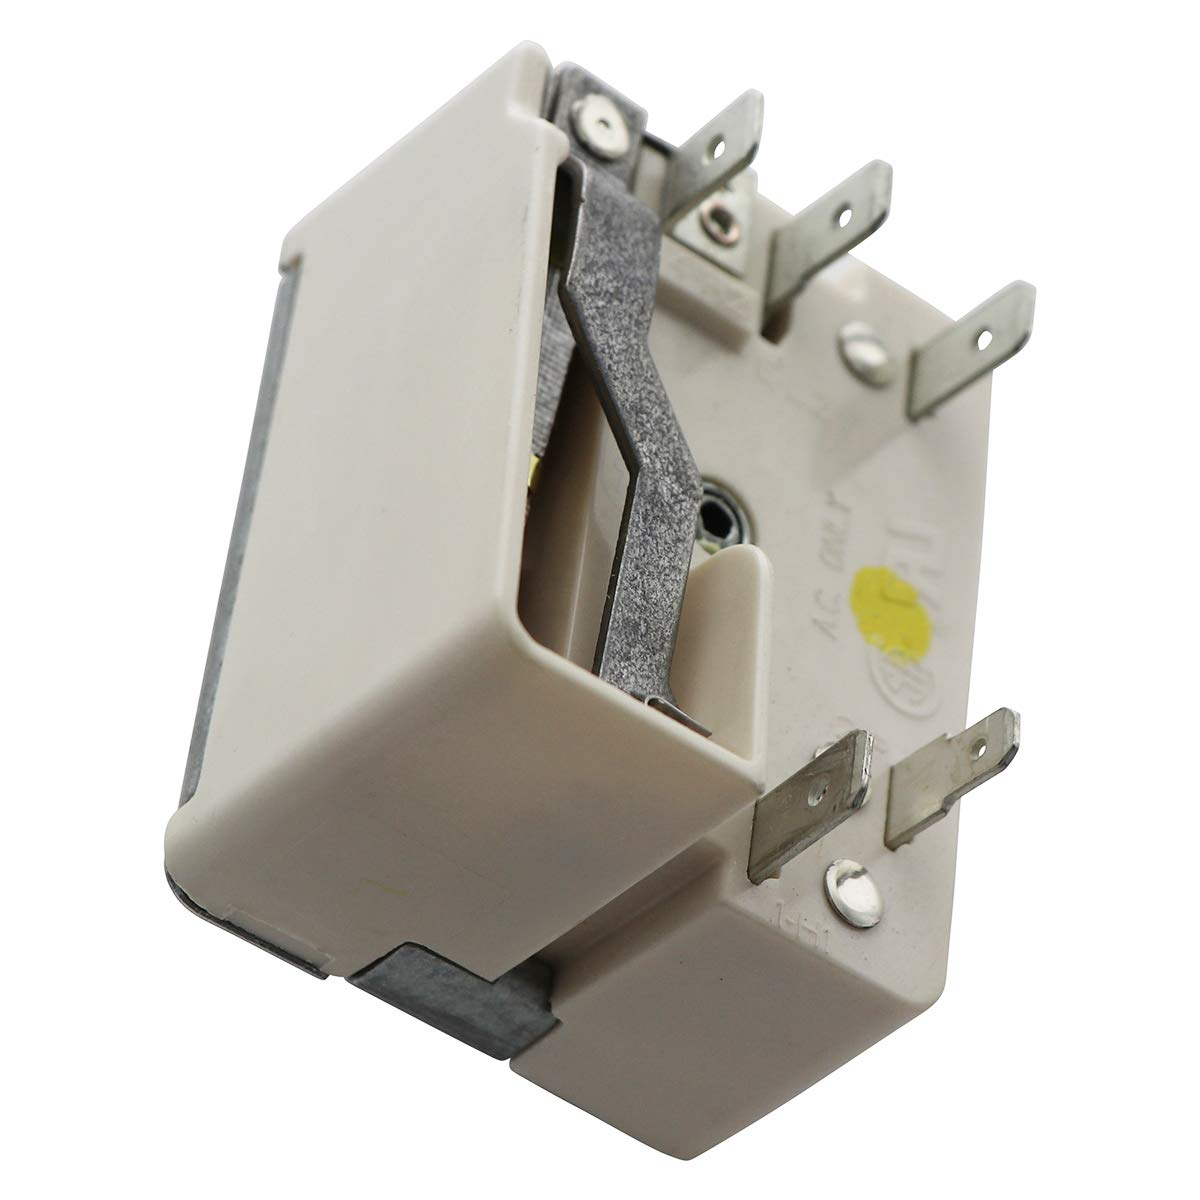 Endurance Pro 3148952 Infinite Switch for Range Replacement for Whirlpool